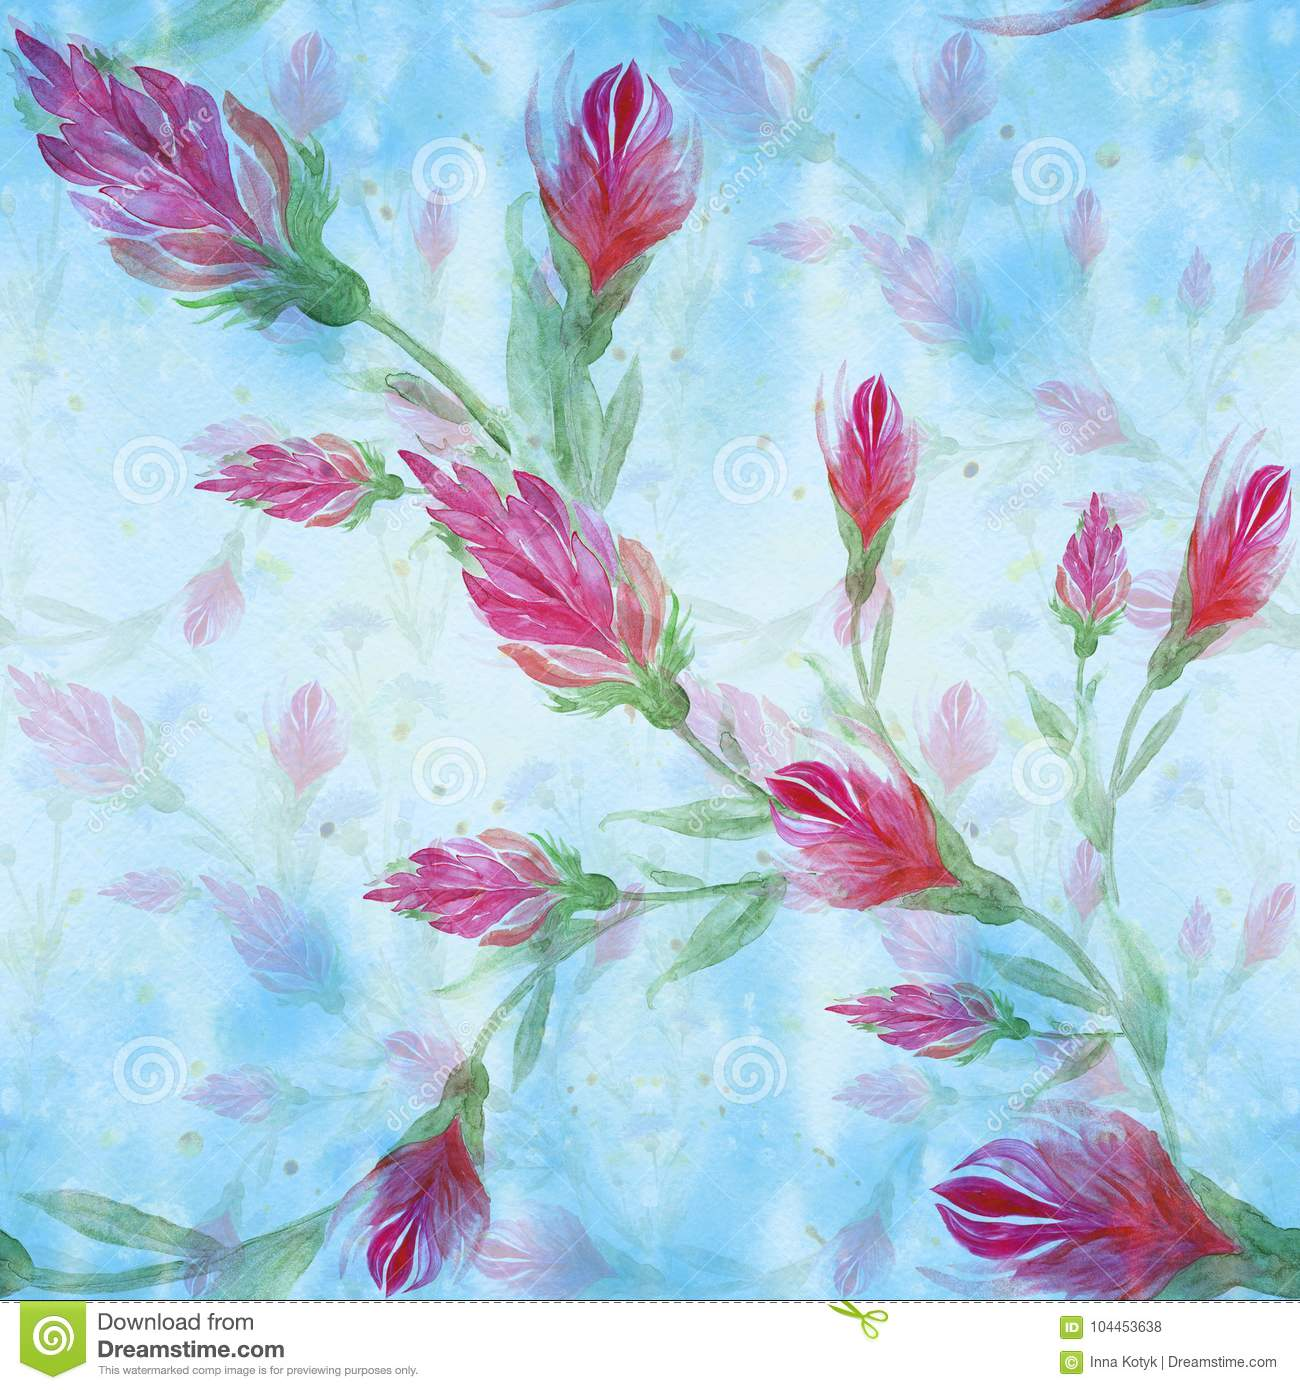 Red Flowers On The Background Of Watercolor Painting Wallpaper Seamless Pattern